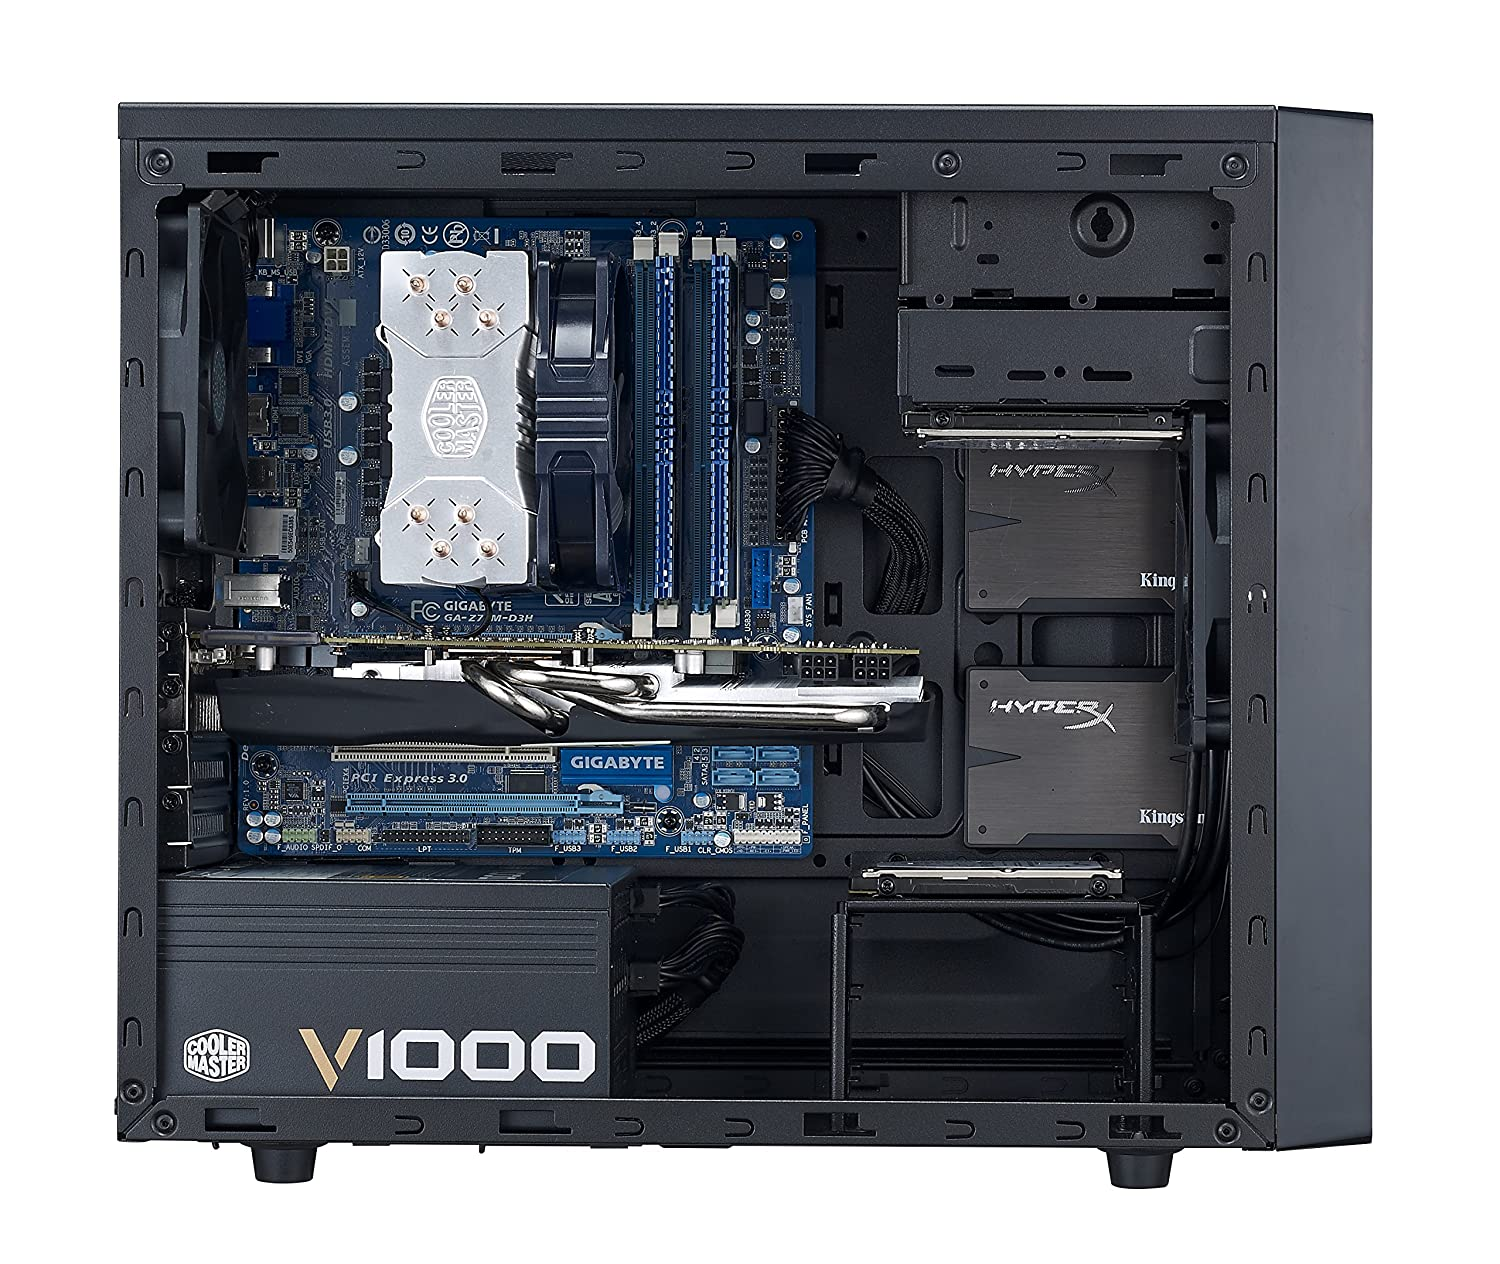 Cooler Master N300 Computer Case ATX USB 3.0 Mesh Side Panel NSE-300-KKN1 microATX